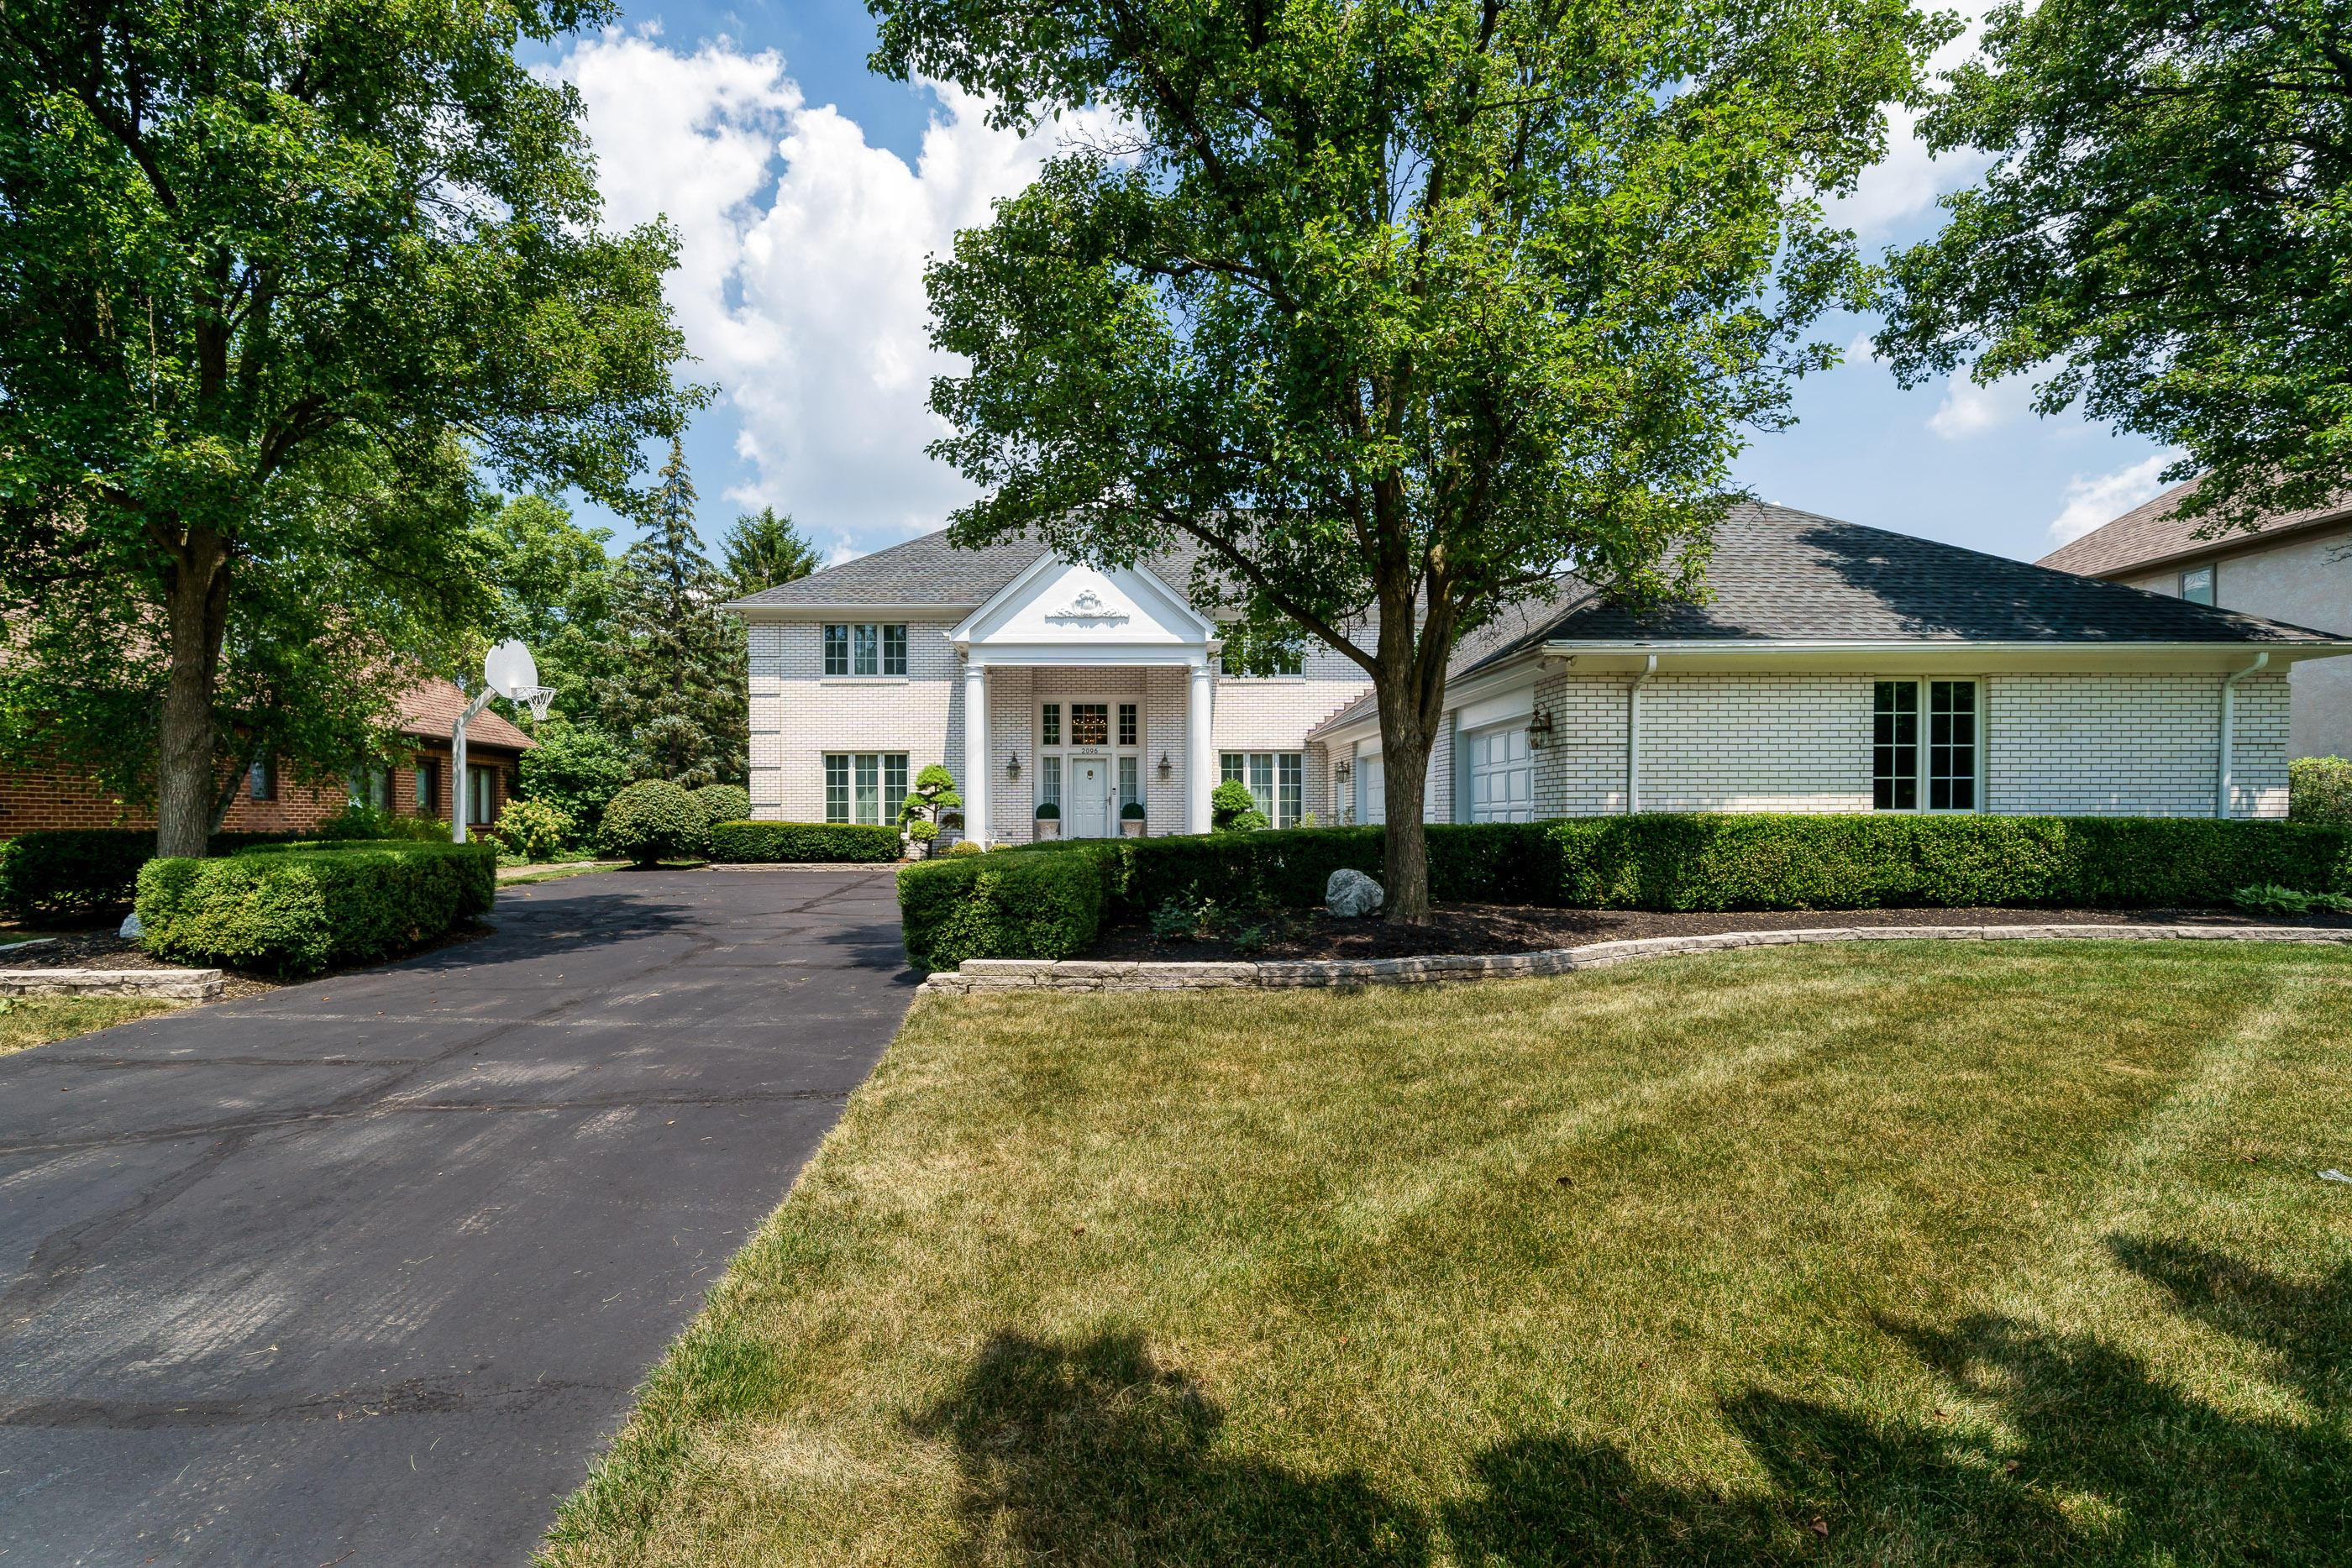 Photo of 2096 Sandover Court, Upper Arlington, OH 43220